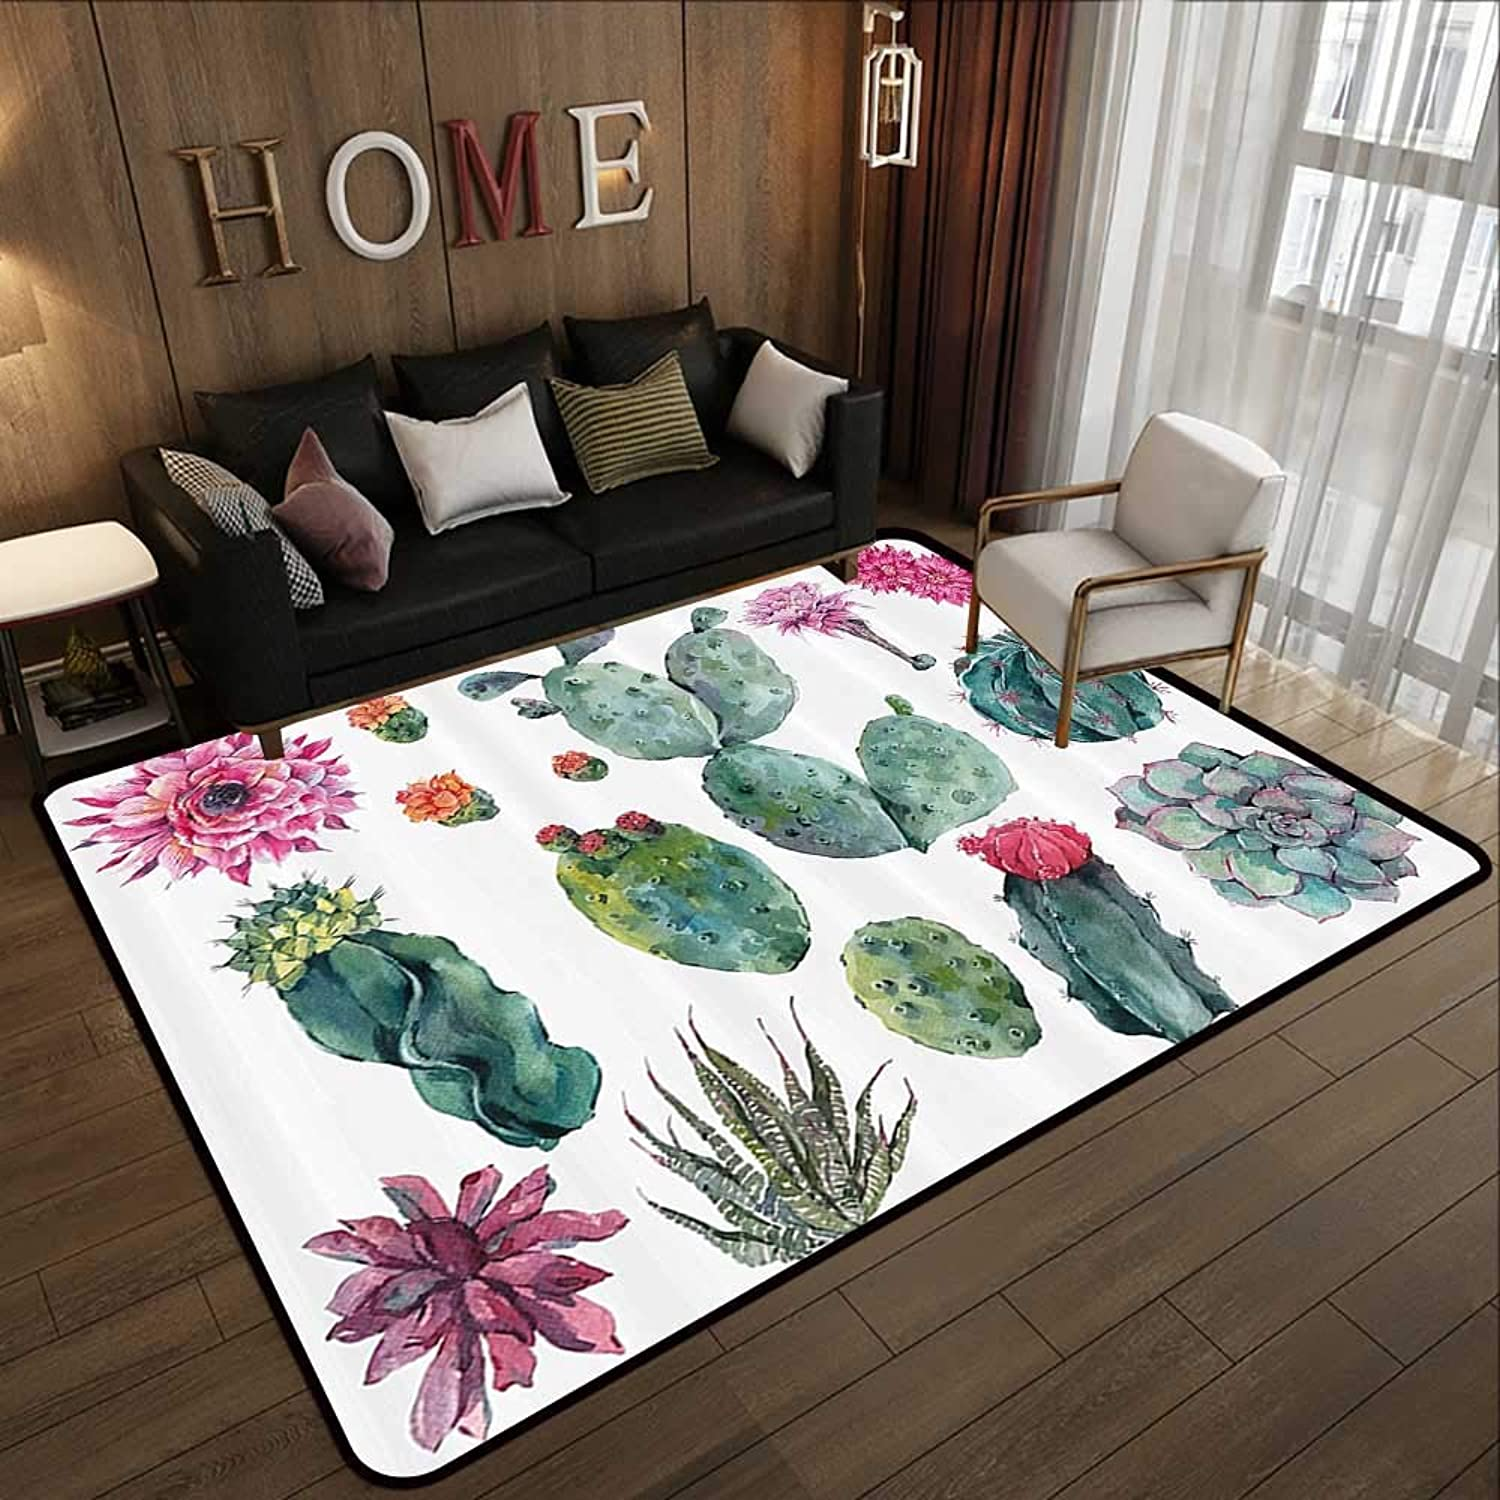 Kids Rugs,Nature Decor,Desert Botanic Herbal Cartoon Like Cactus Plant Flower with Spikes Print,Green and Pink 47 x 59  Slip-Resistant Washable Entrance Doormat